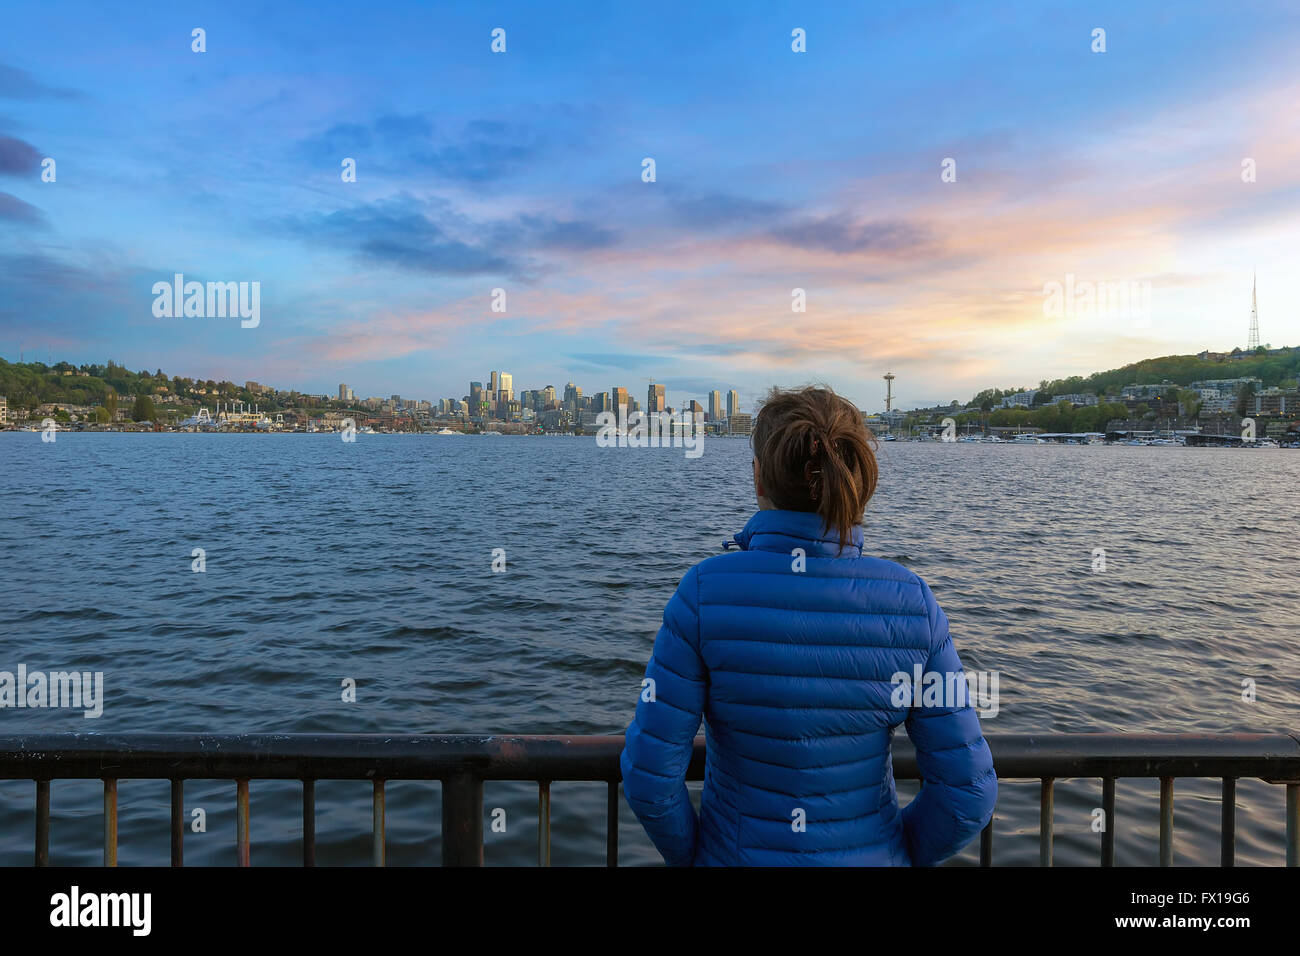 Woman watching sunset over Seattle Washington Skyline along Lake Union from Gas Works Park - Stock Image